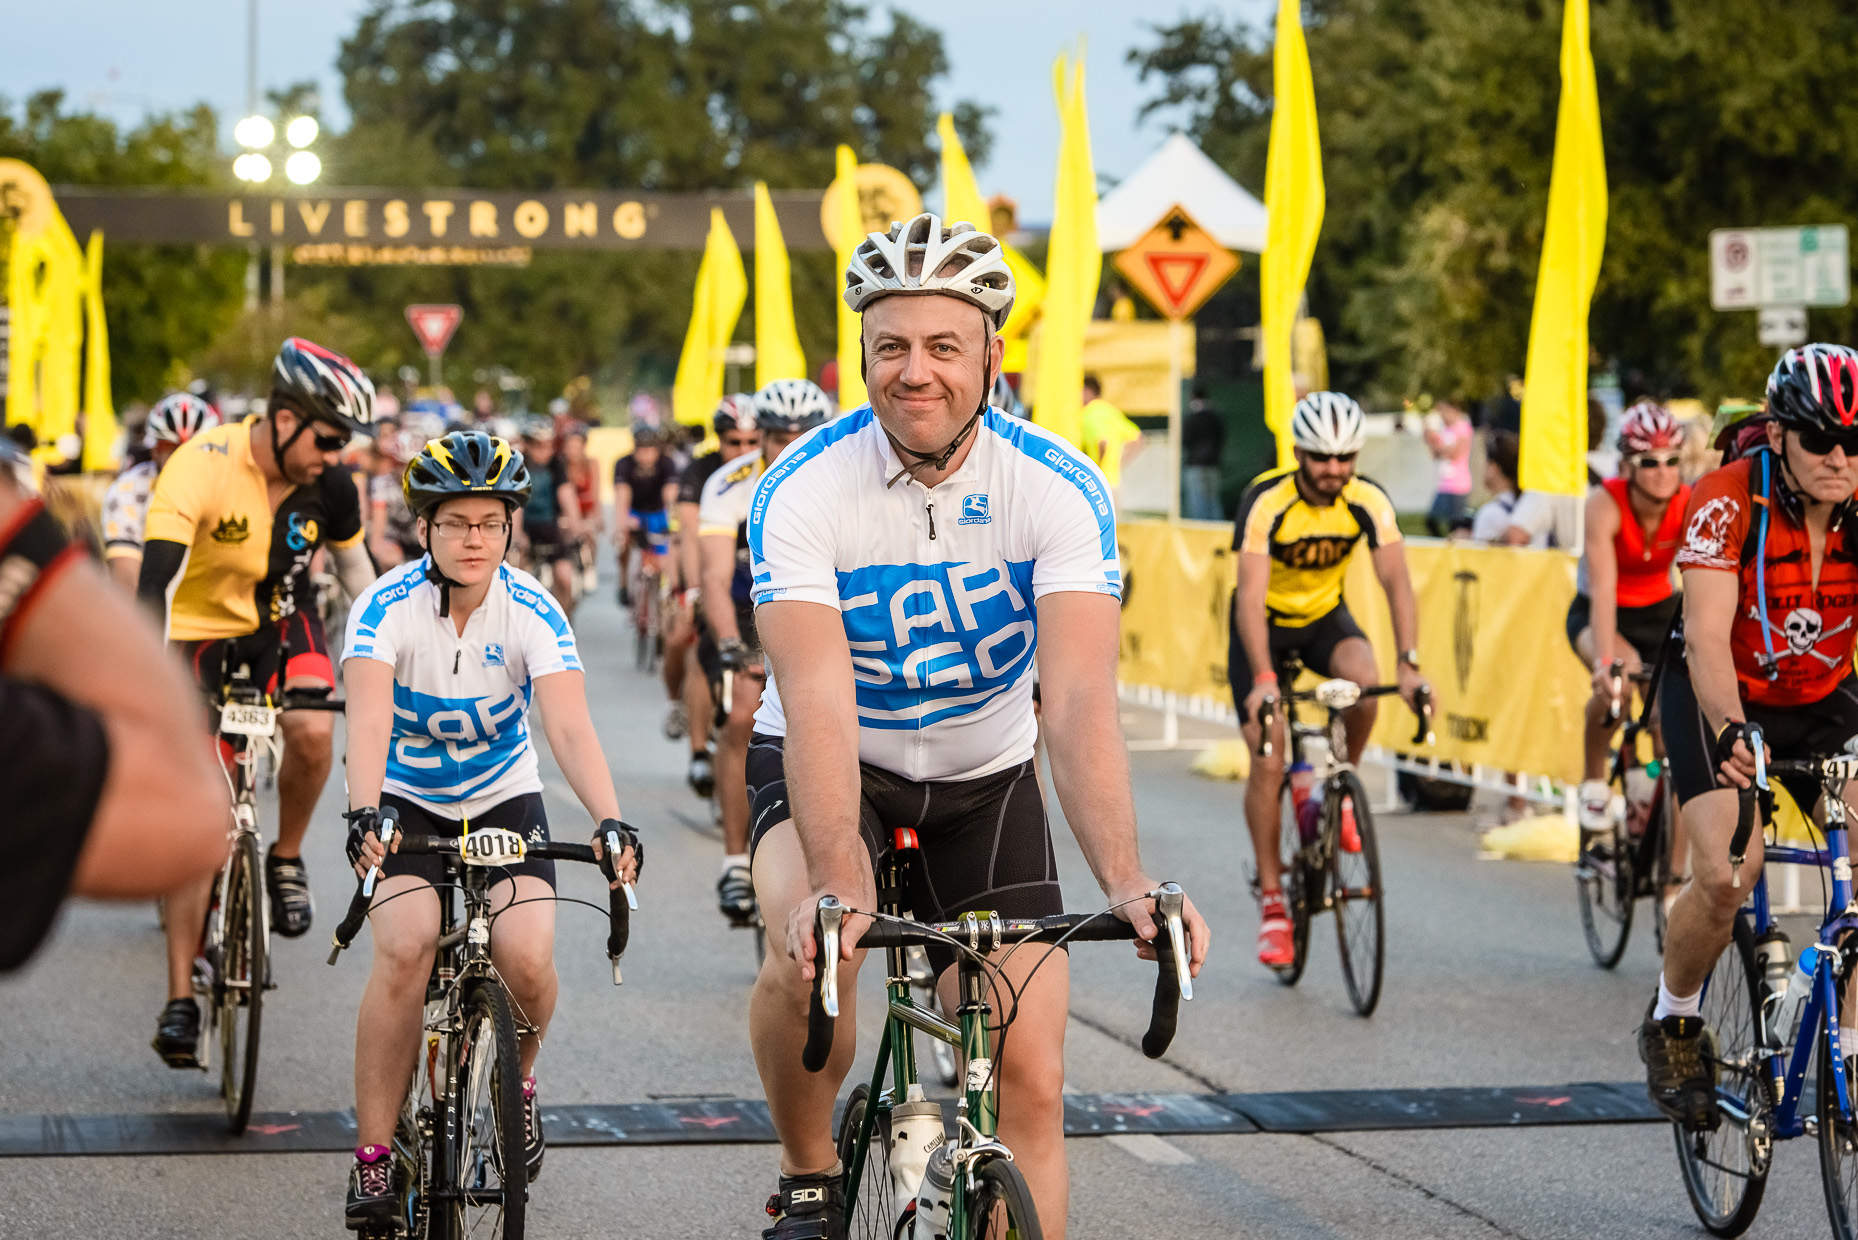 Livestrong-Downtown-Austin-Commercial-Photographer-car2go-bicyclists.jpg